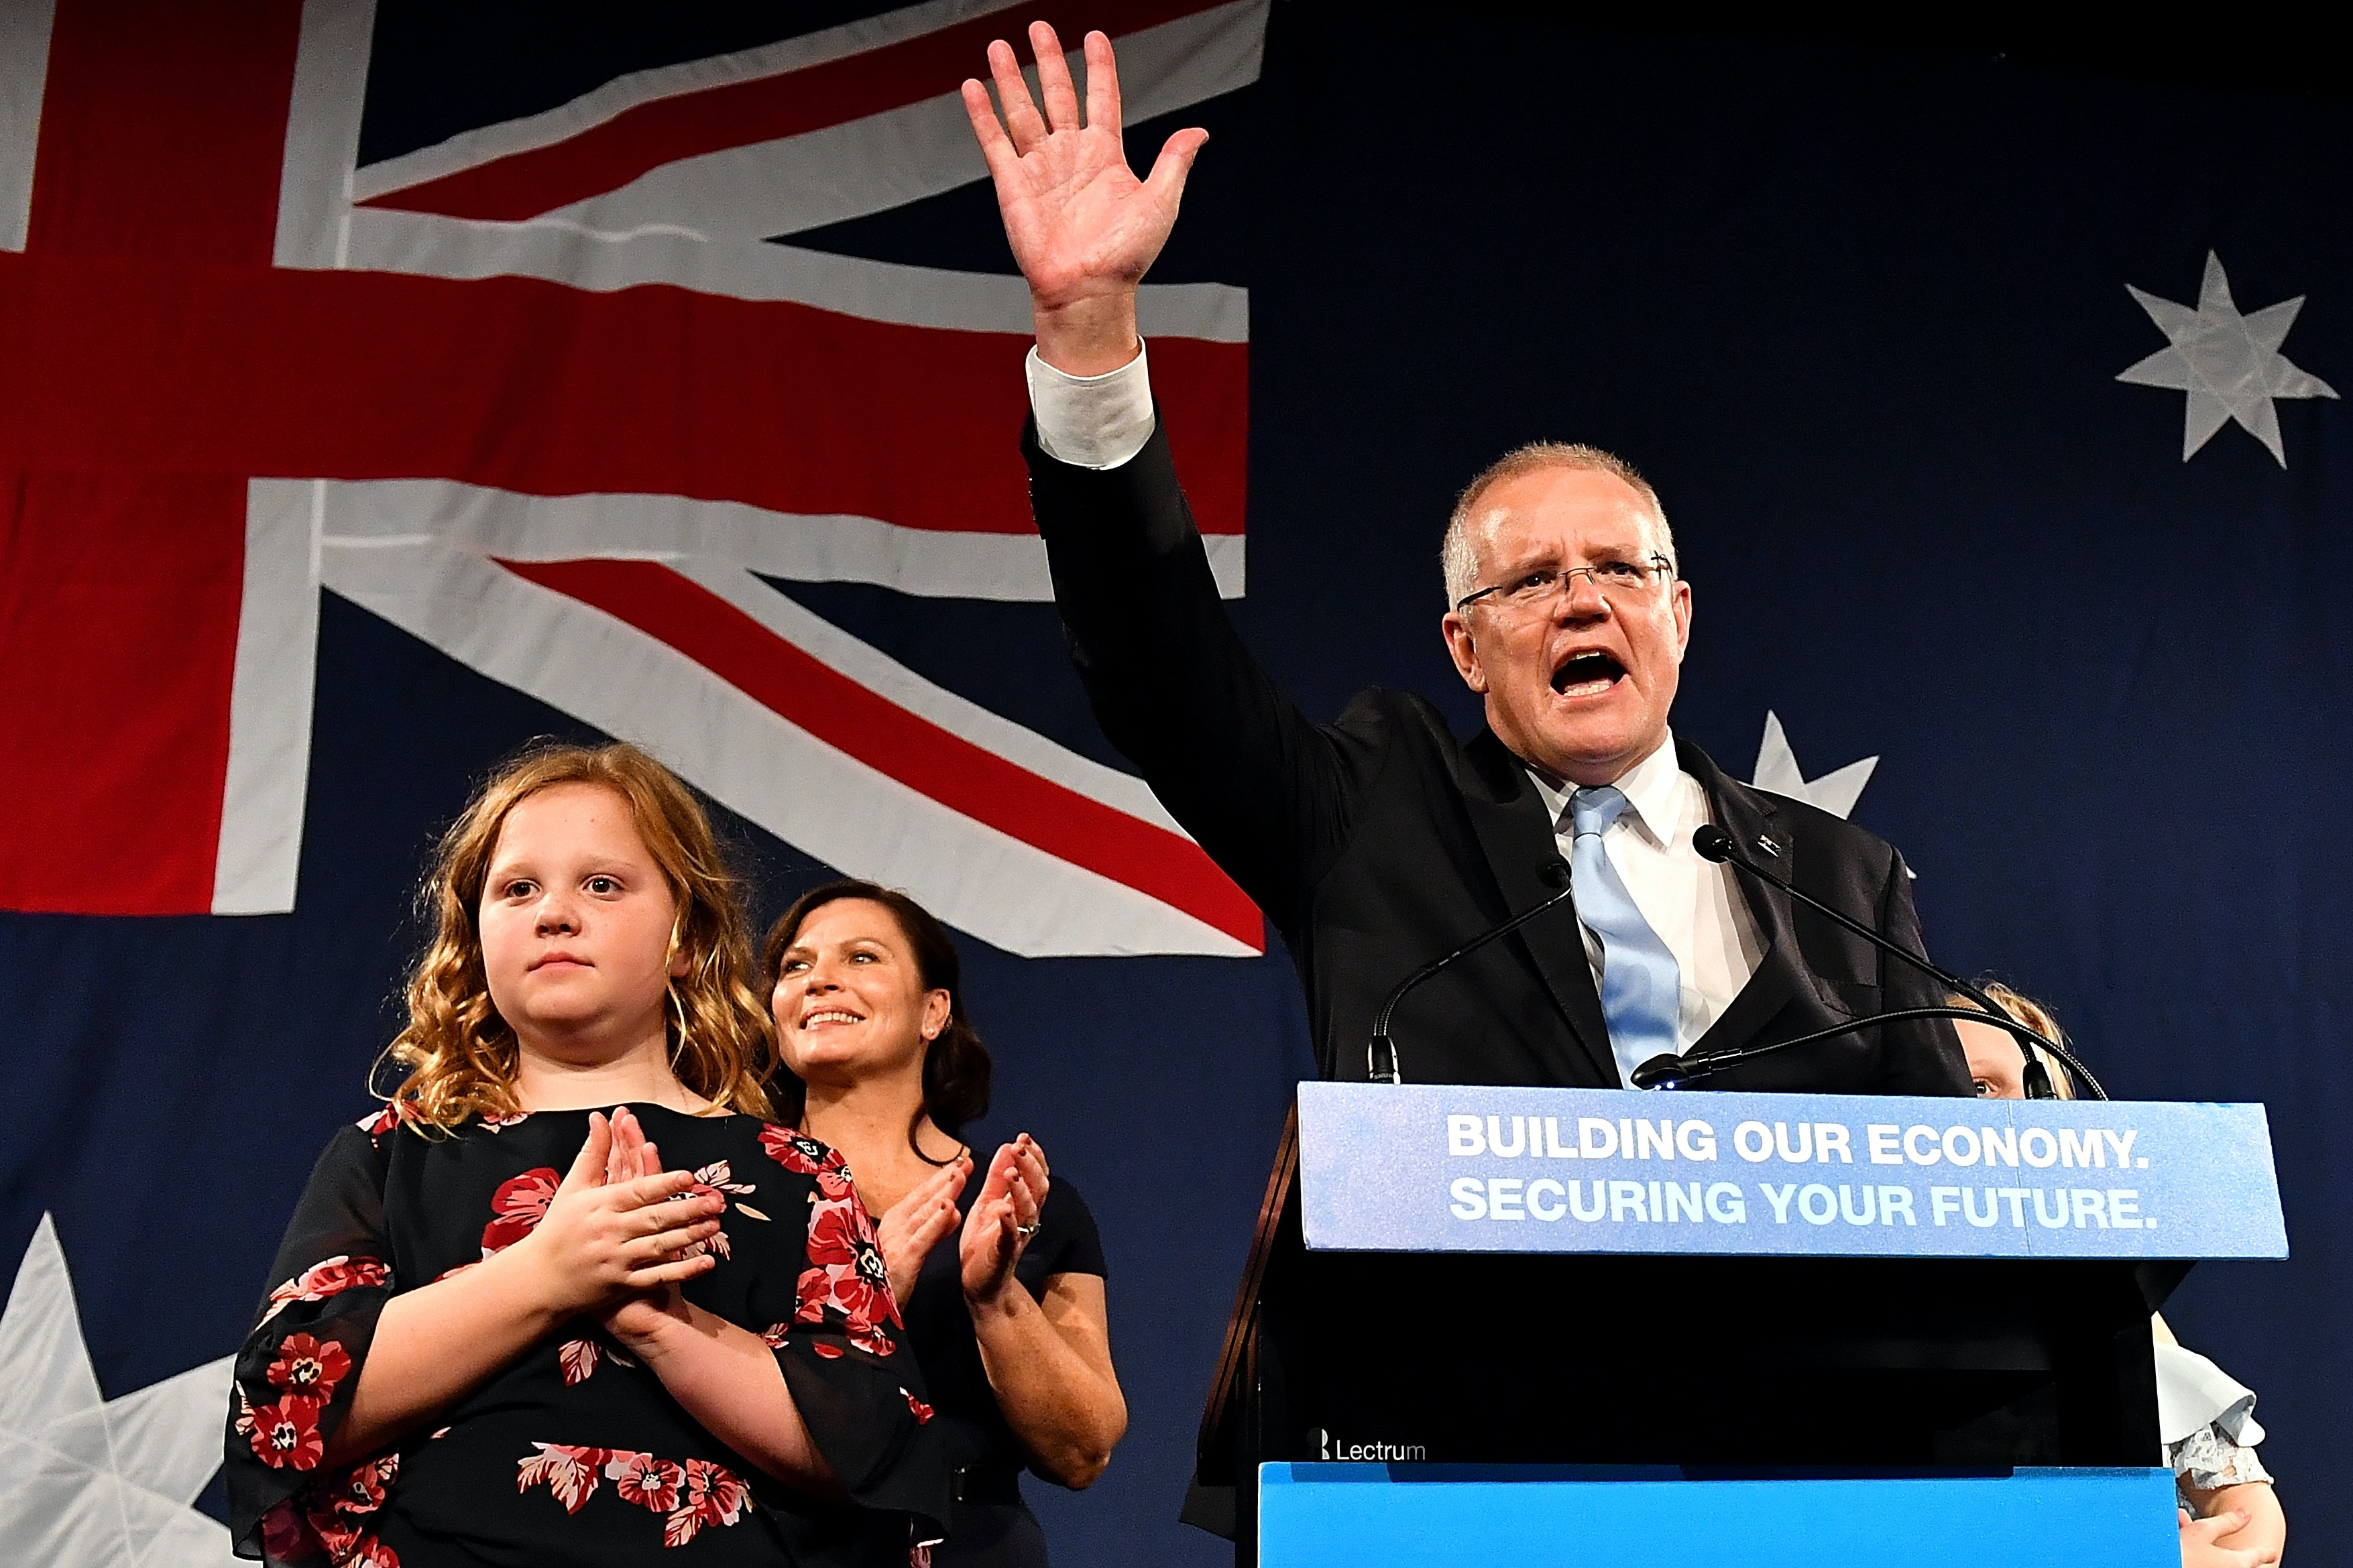 Scott Morrison hails 'miracle' as Coalition snatches unexpected victory